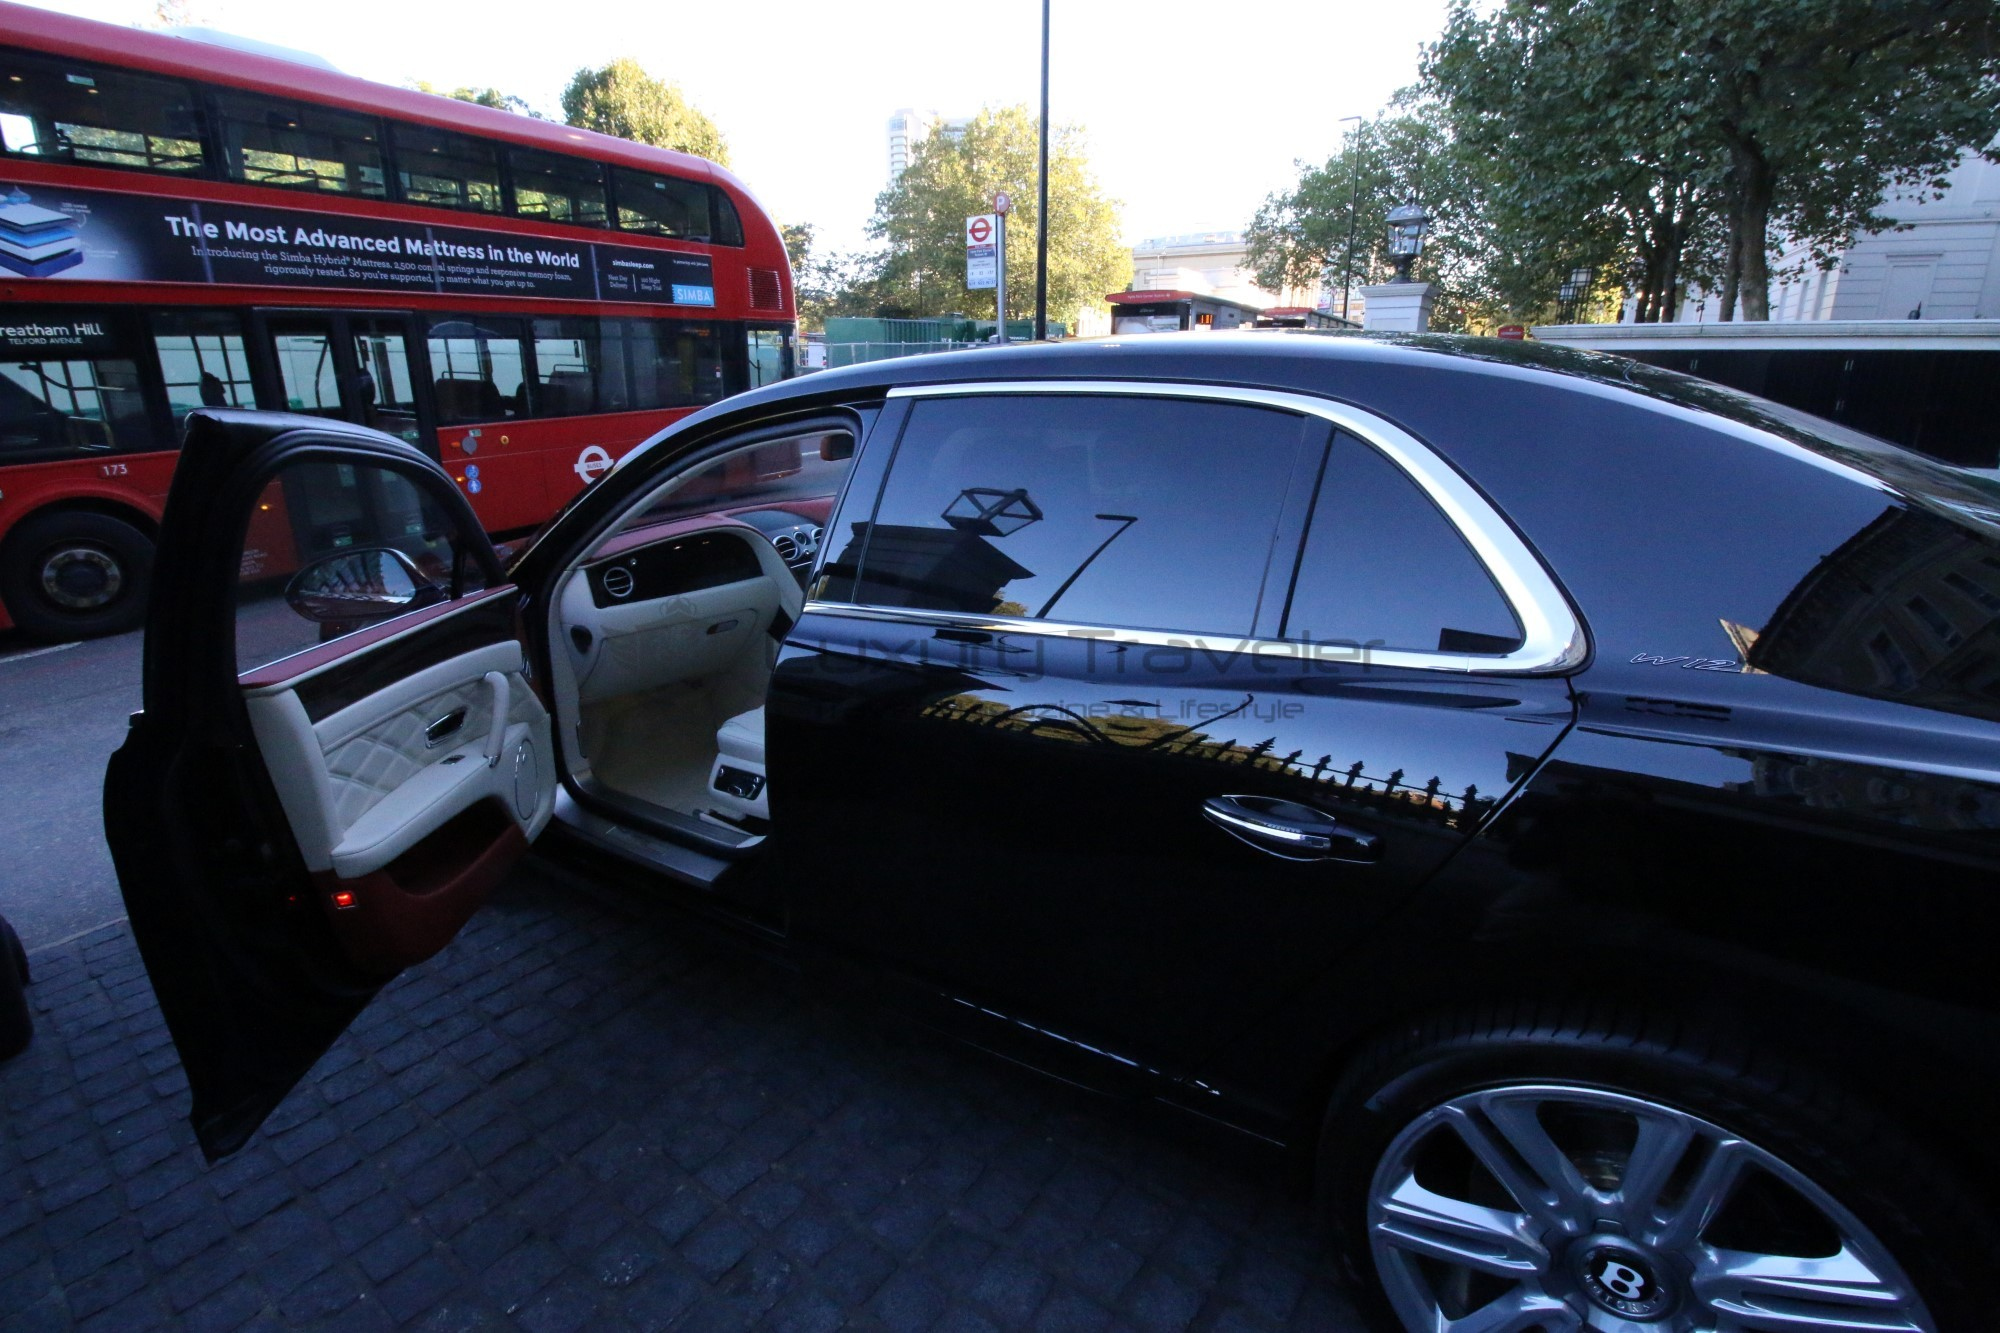 41-vip_executive_transfer_chauffeur_driver_london